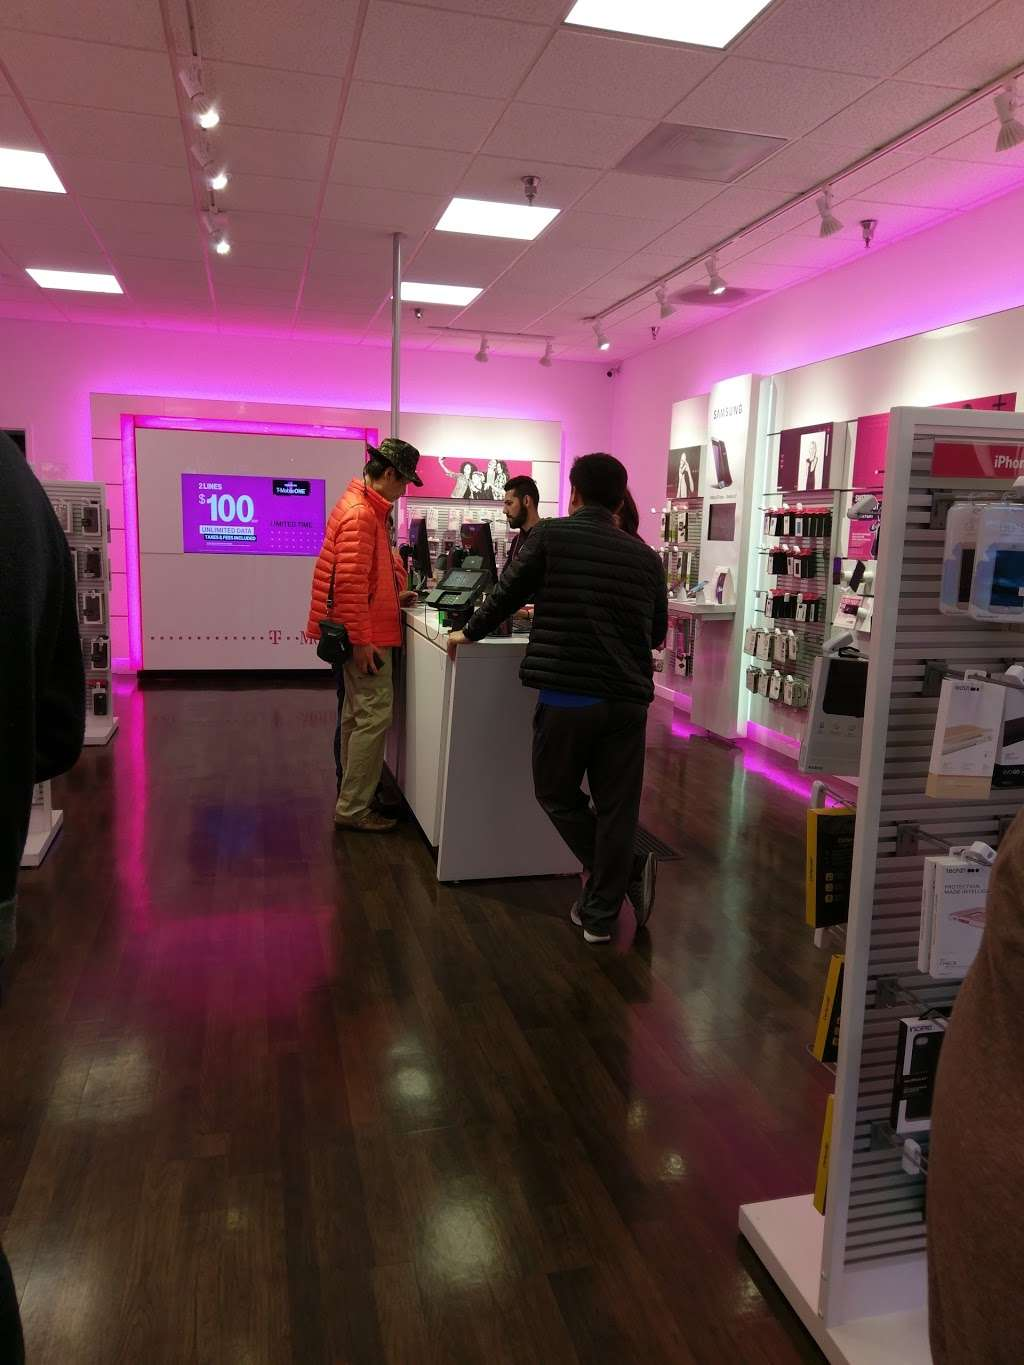 T-Mobile - electronics store  | Photo 1 of 5 | Address: 1370 El Paseo de Saratoga, San Jose, CA 95130, USA | Phone: (408) 379-1359